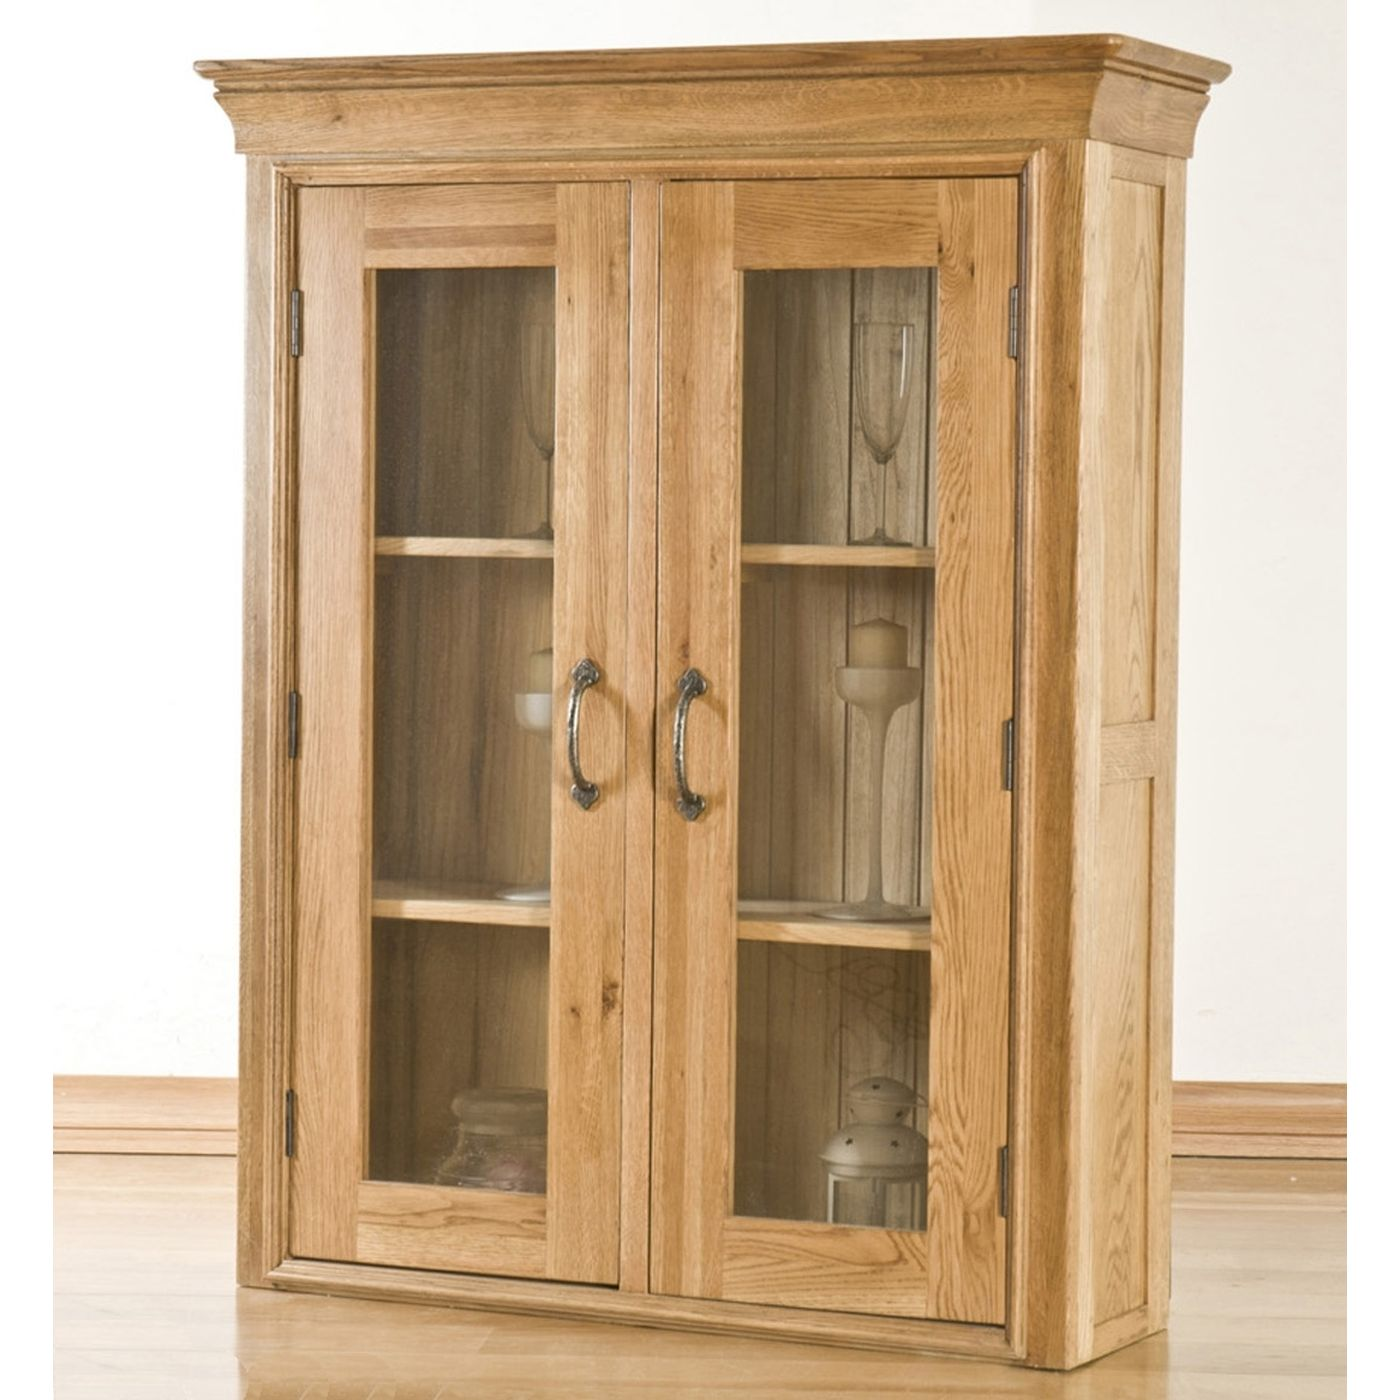 Toulon solid oak furniture small dining room china display for Dining room armoire